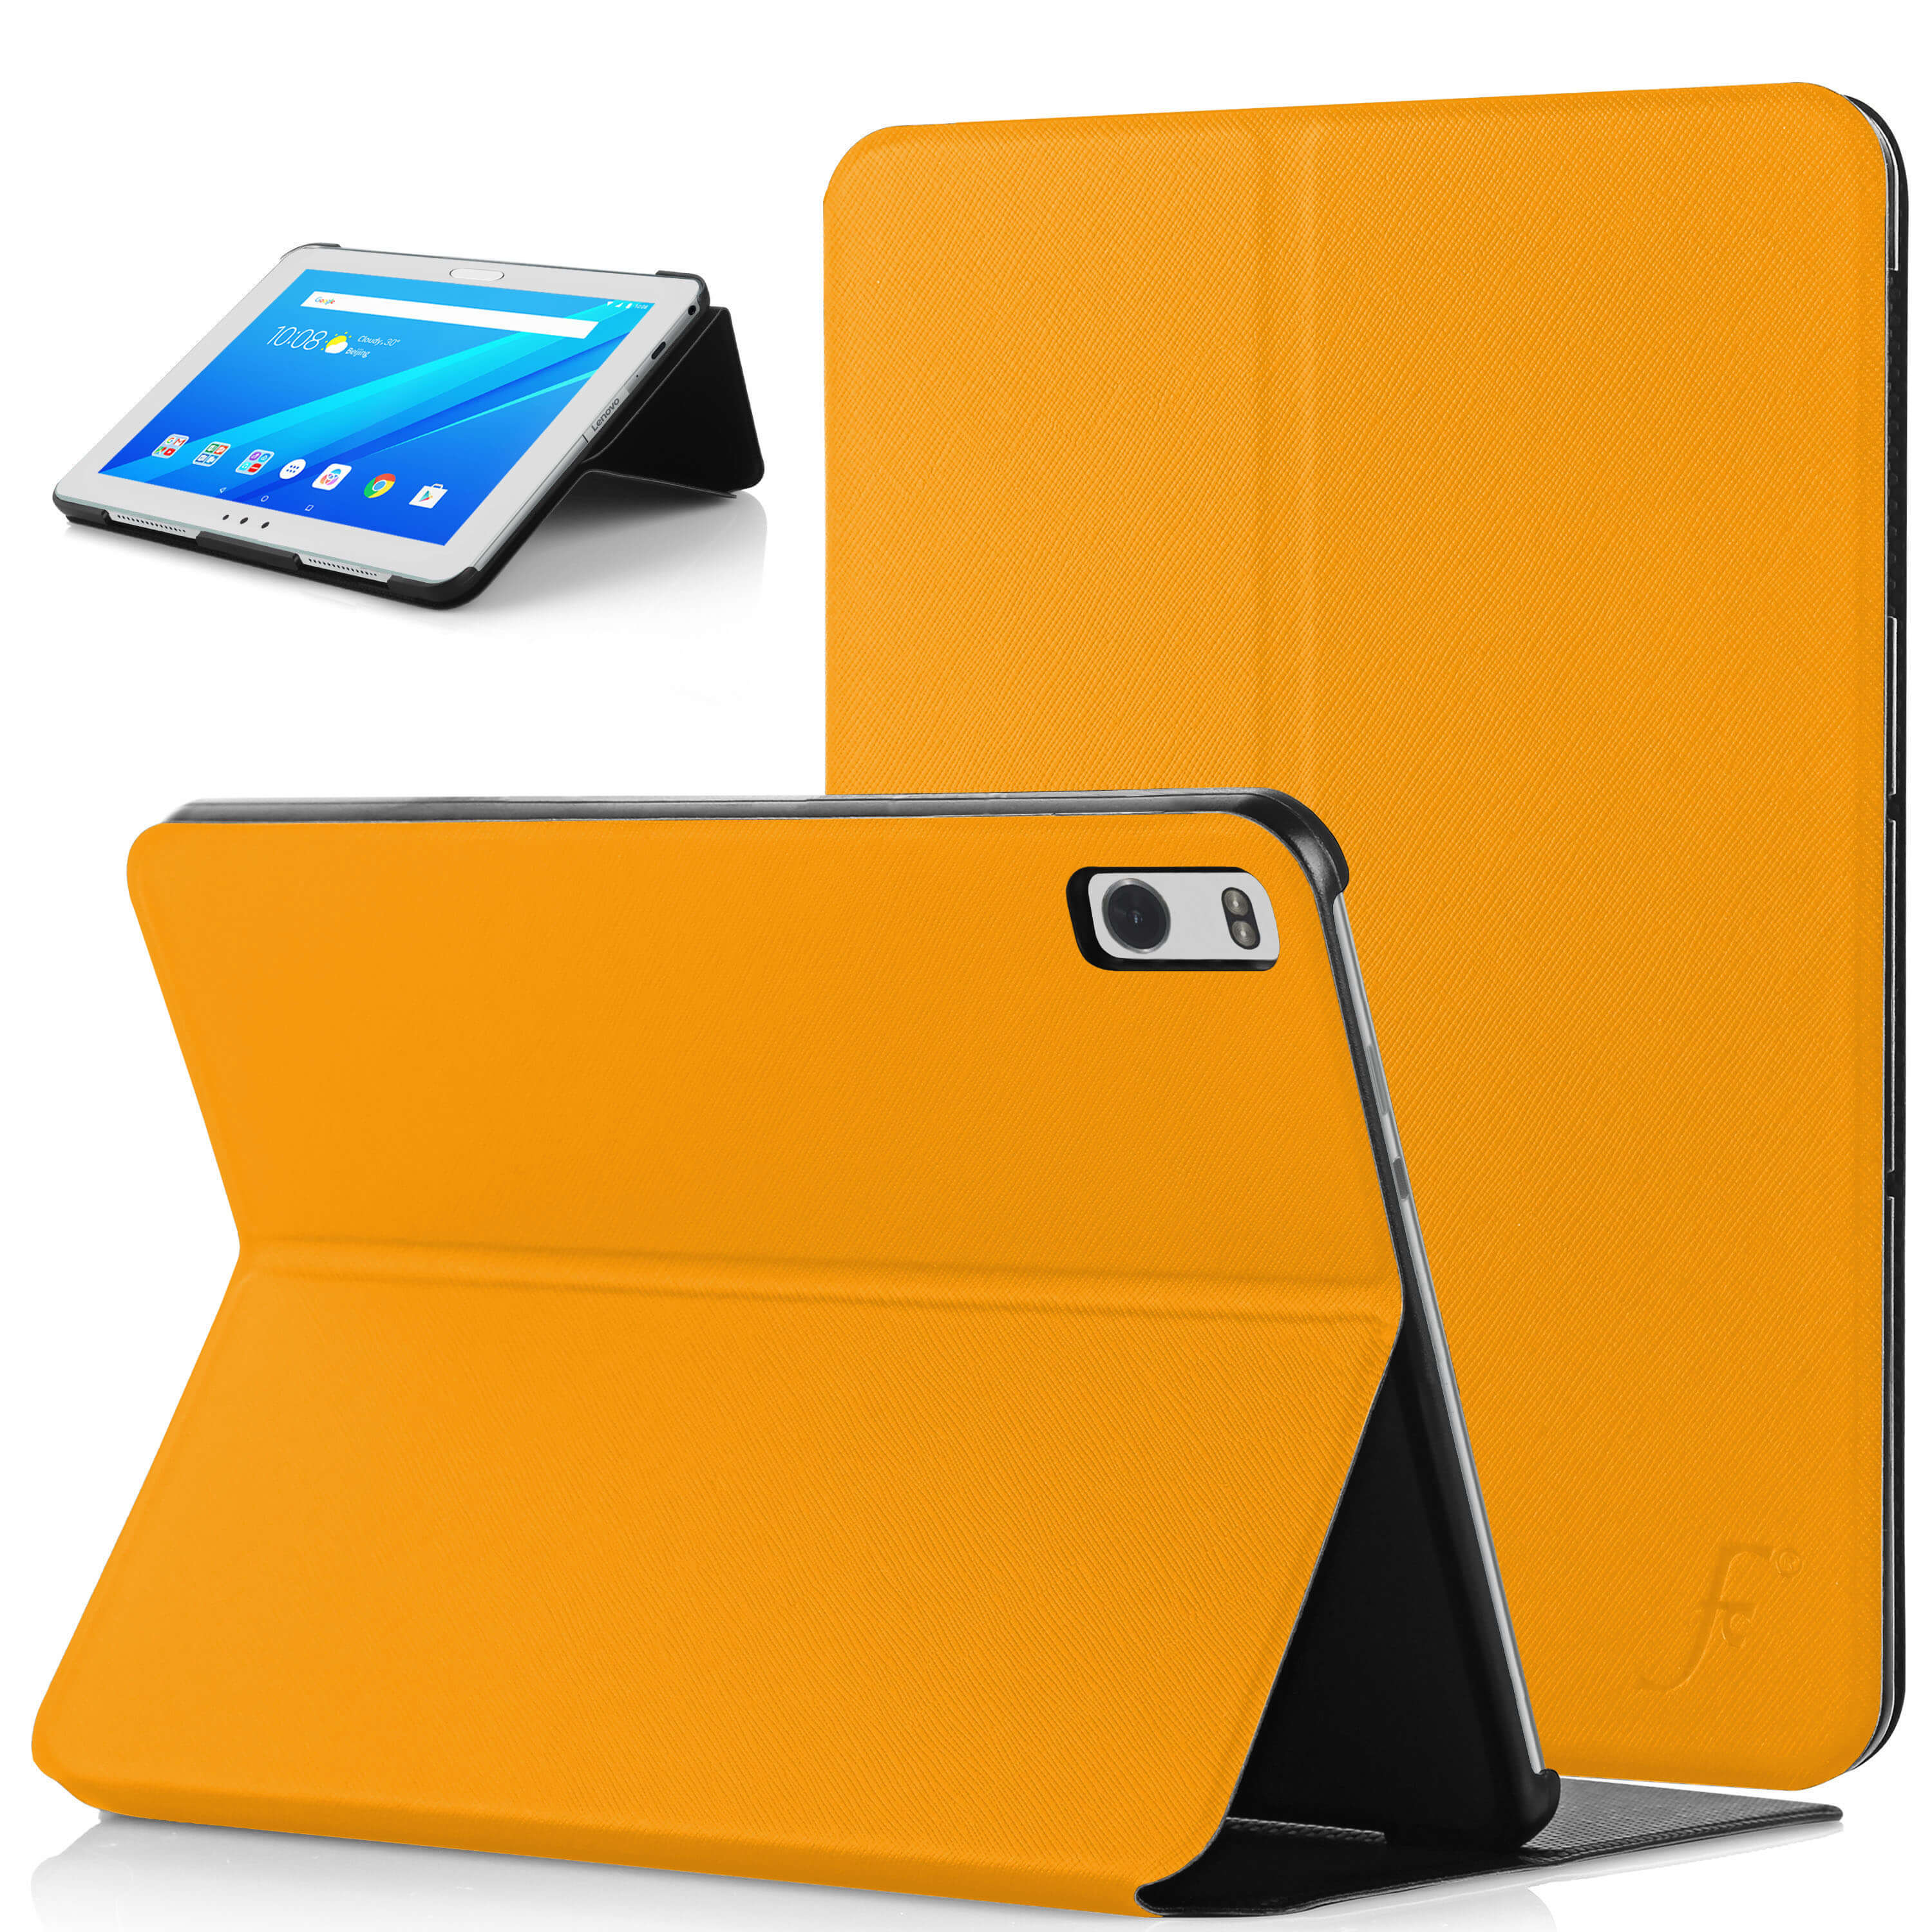 lenovo tab 4 10 cover  Forefront Cases® Lenovo Tab 4 10 PLUS 10.1 inches Clam Shell Smart ...